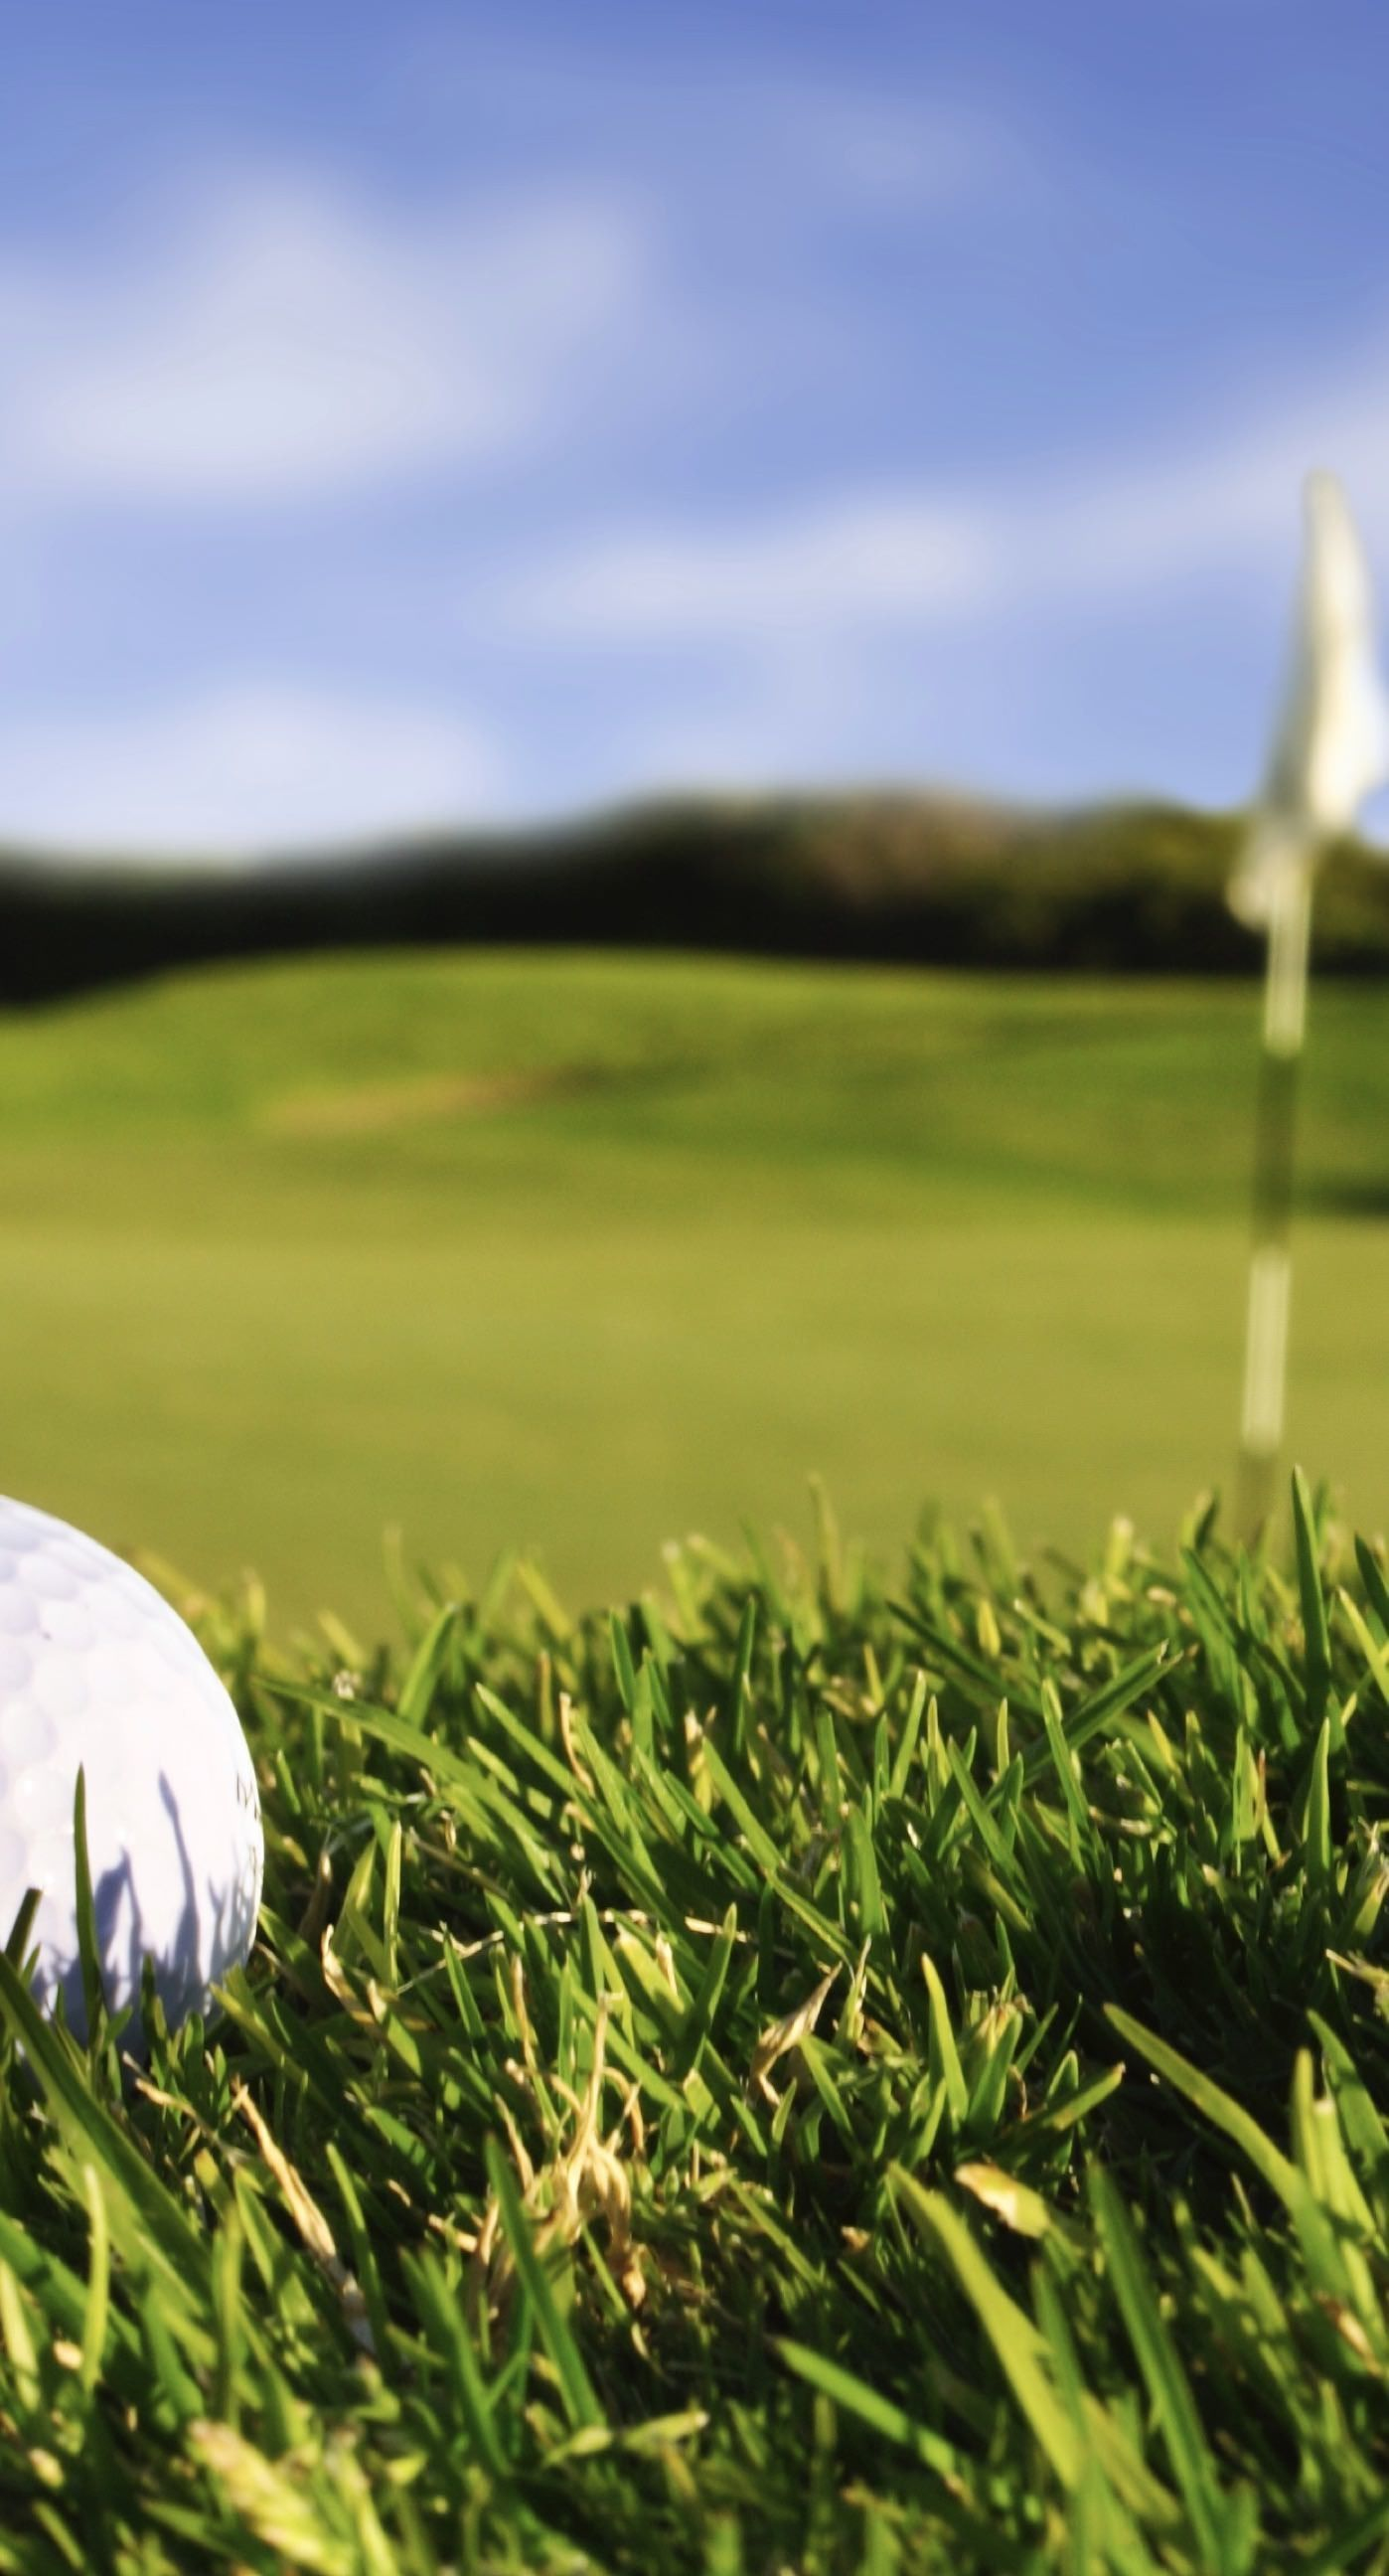 Beautiful Golf Course Iphone Wallpaper Background Images Wallpaper Golf Courses